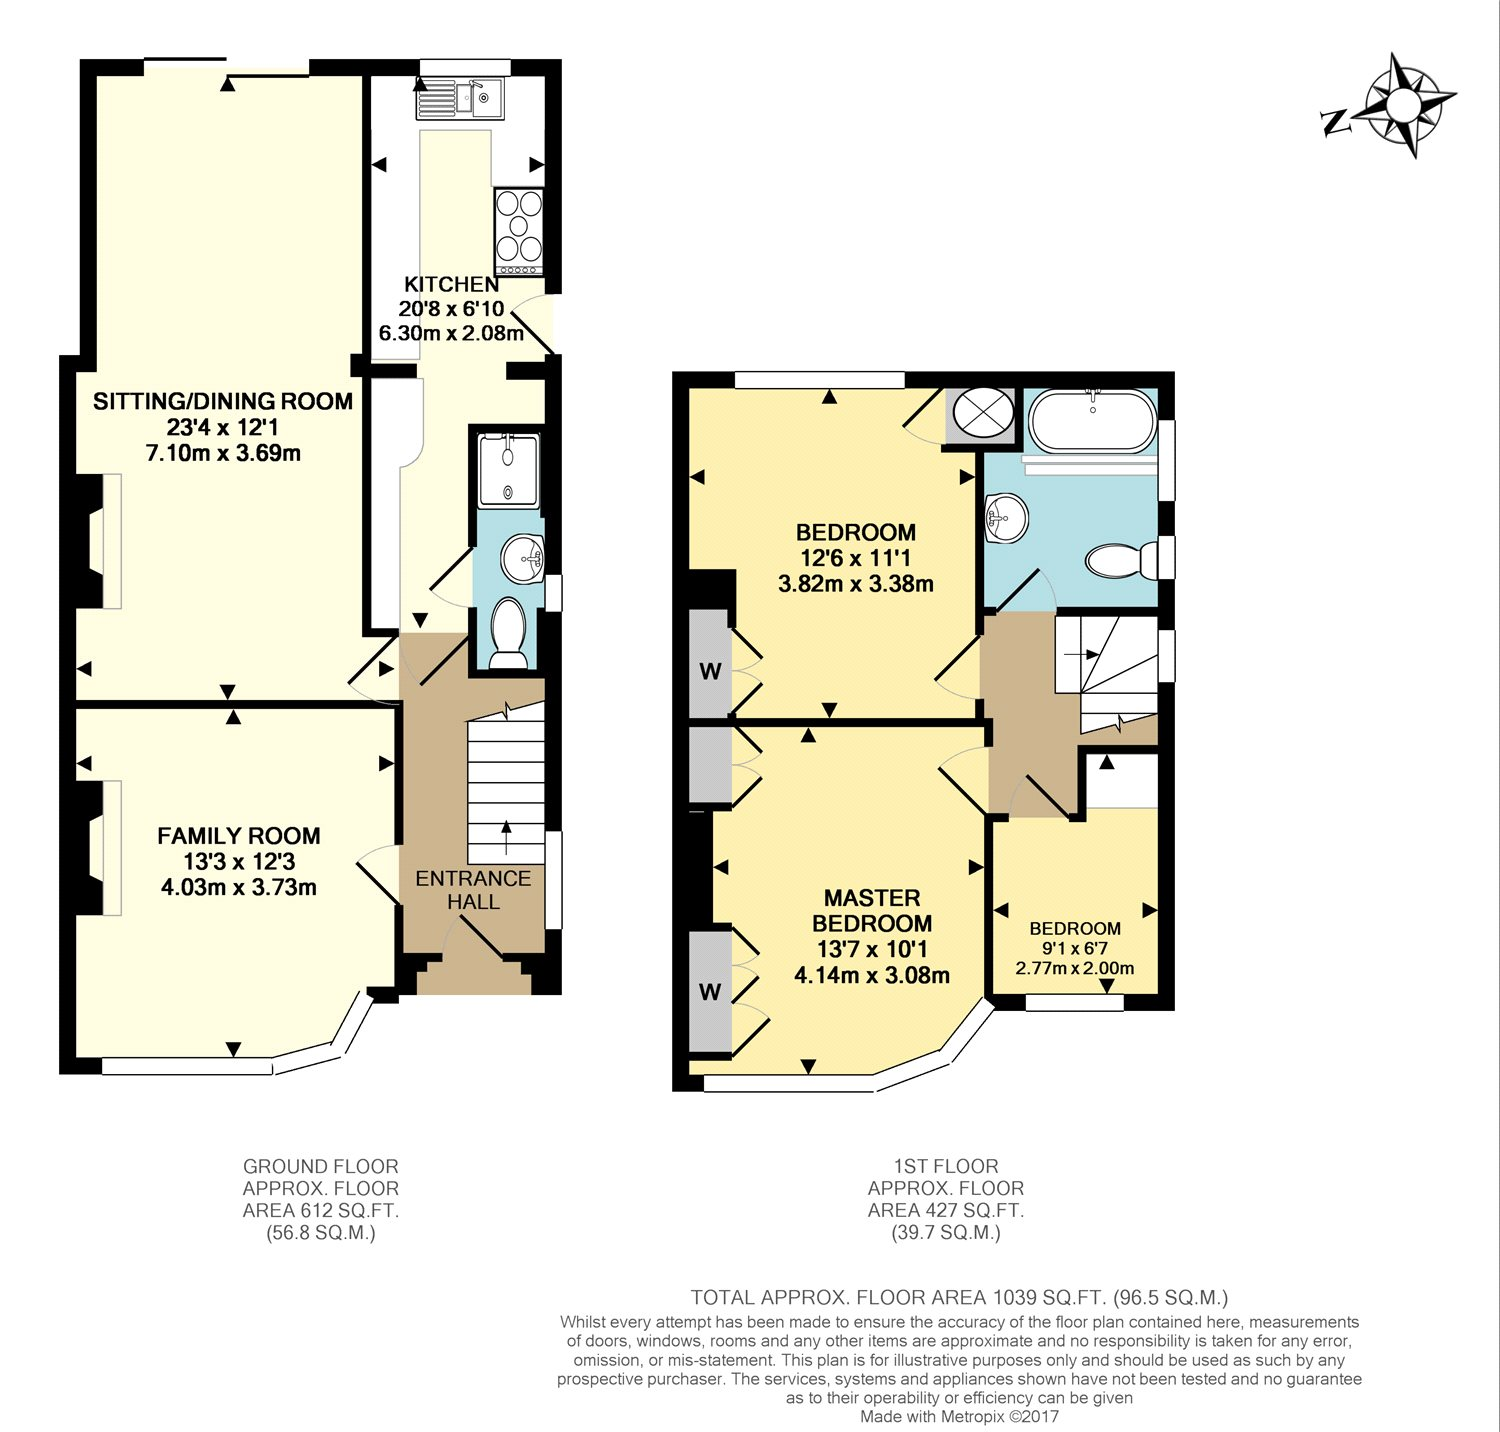 3 Bedroom Property For Sale In Orchard Way Reigate